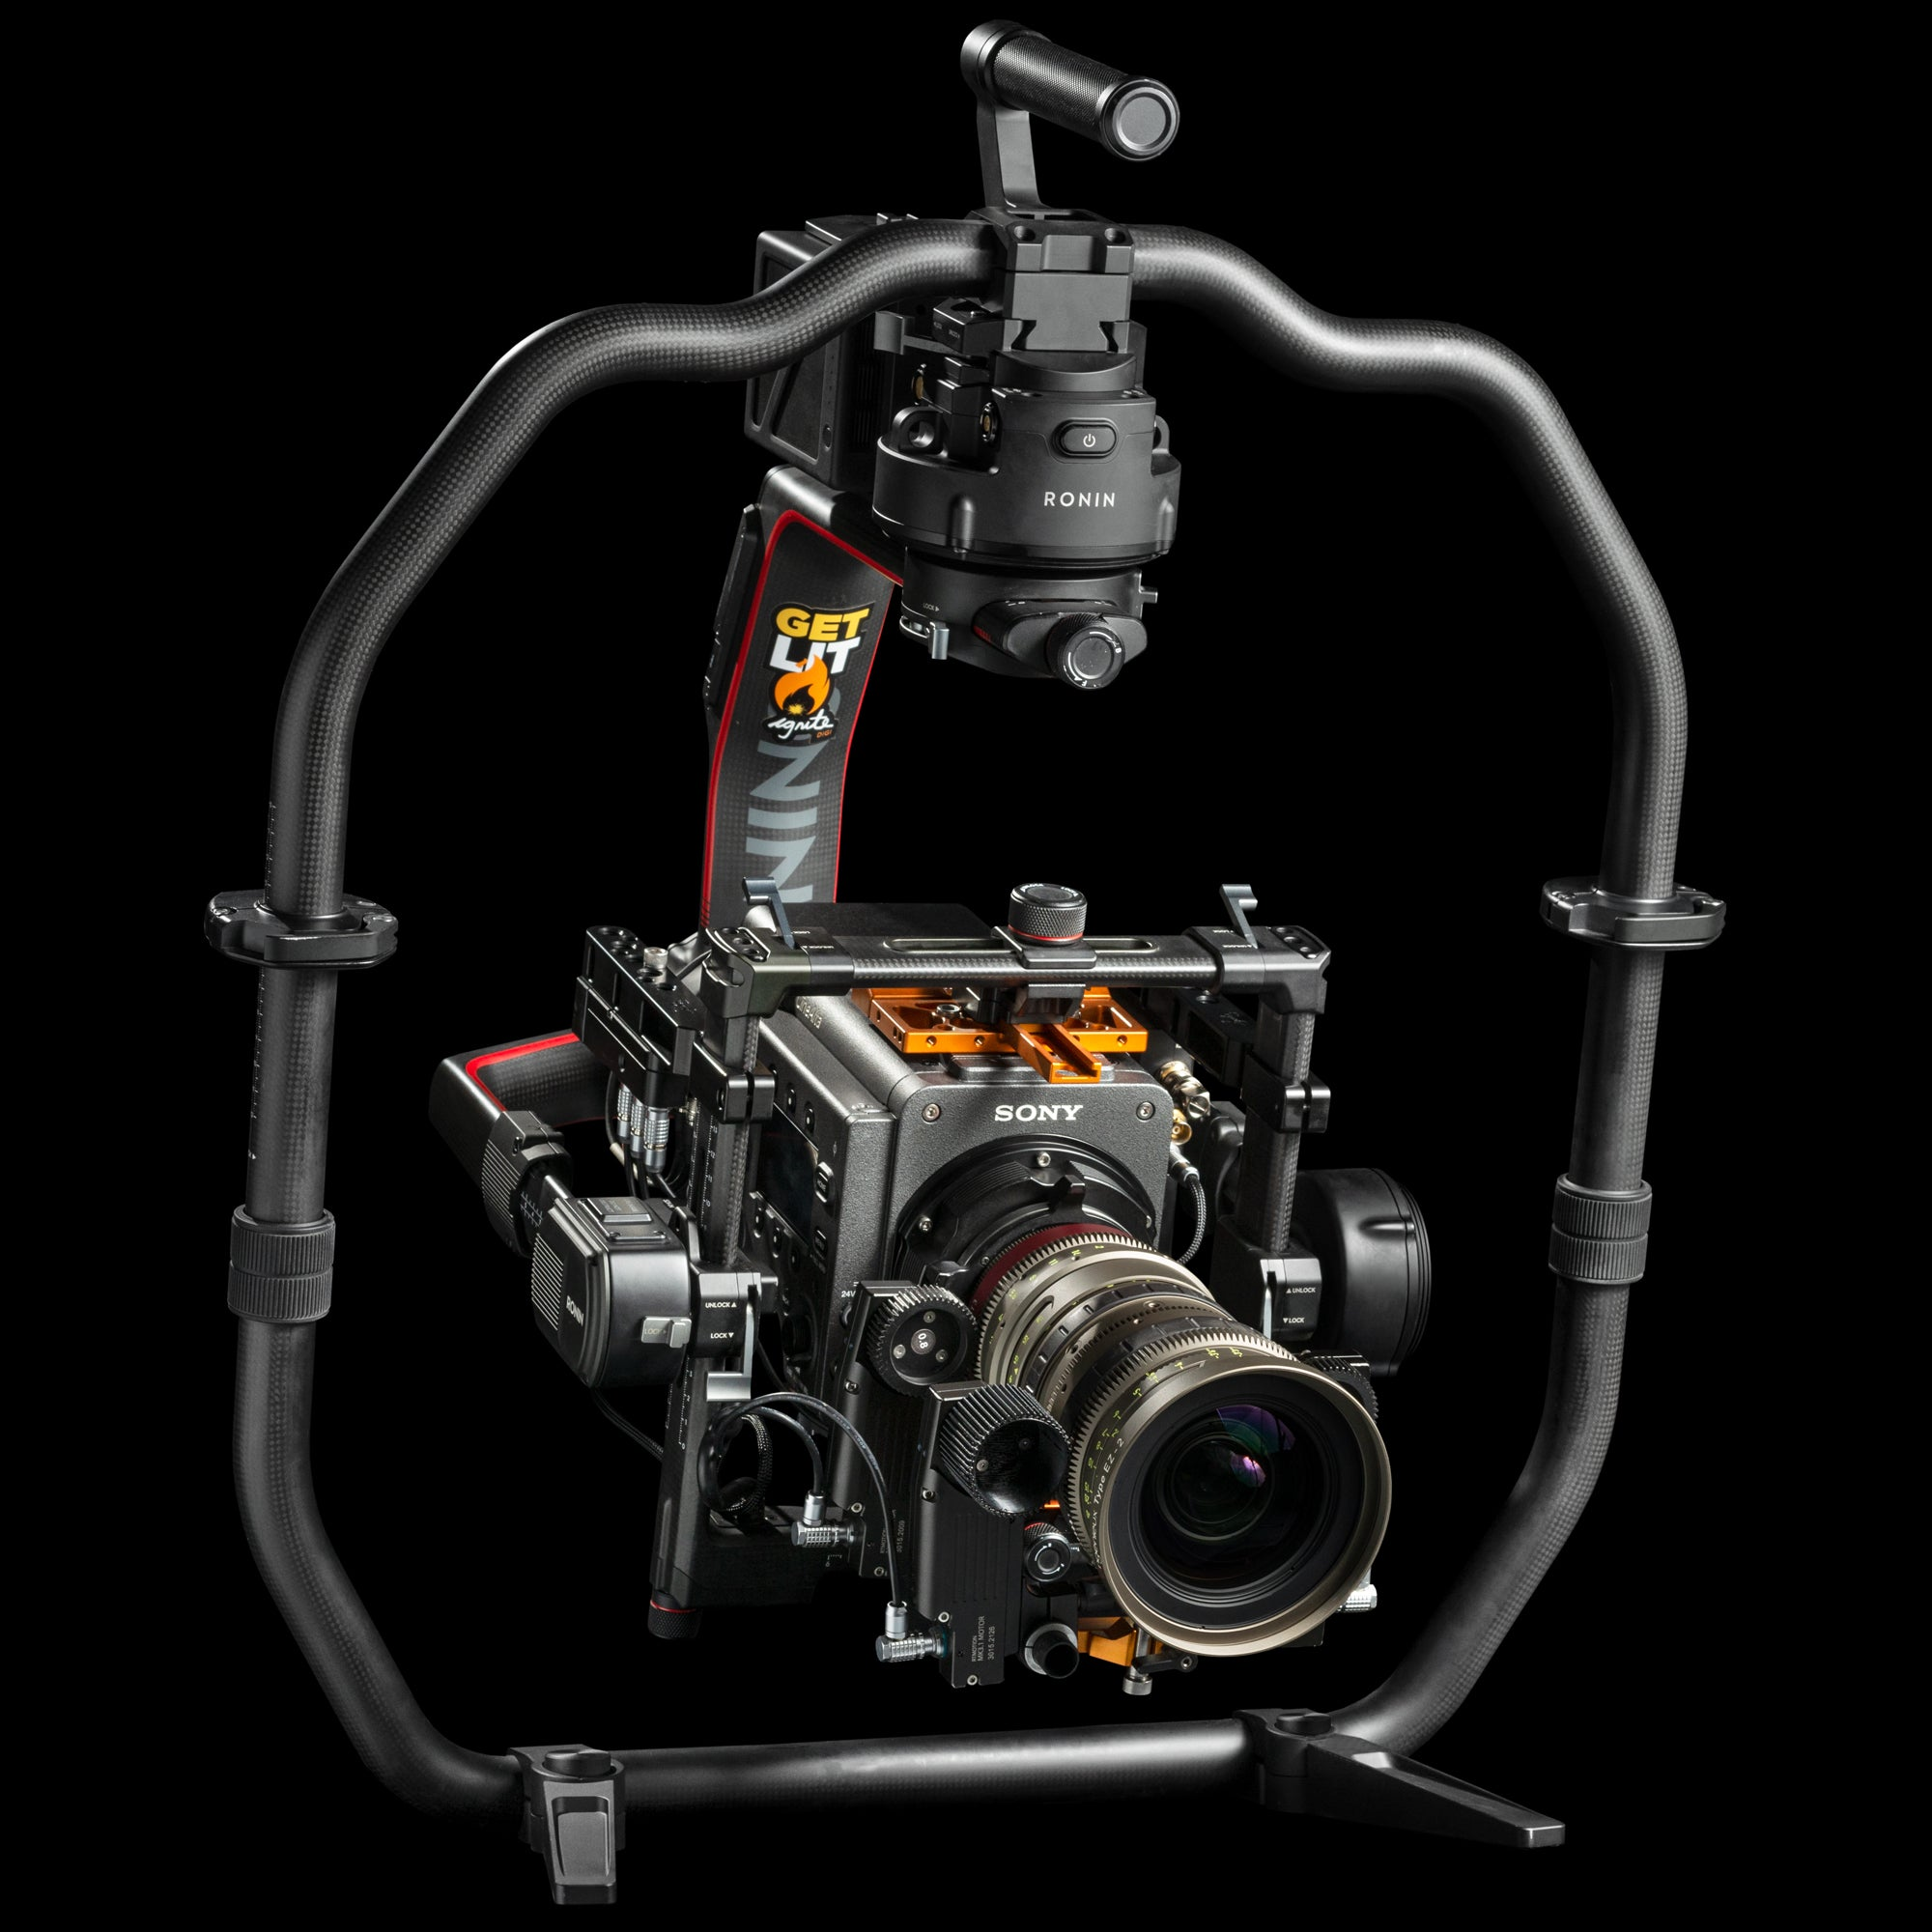 Sony Camera Accessories: Sony Venice, Sony FX9, Sony FS7, Sony FS5